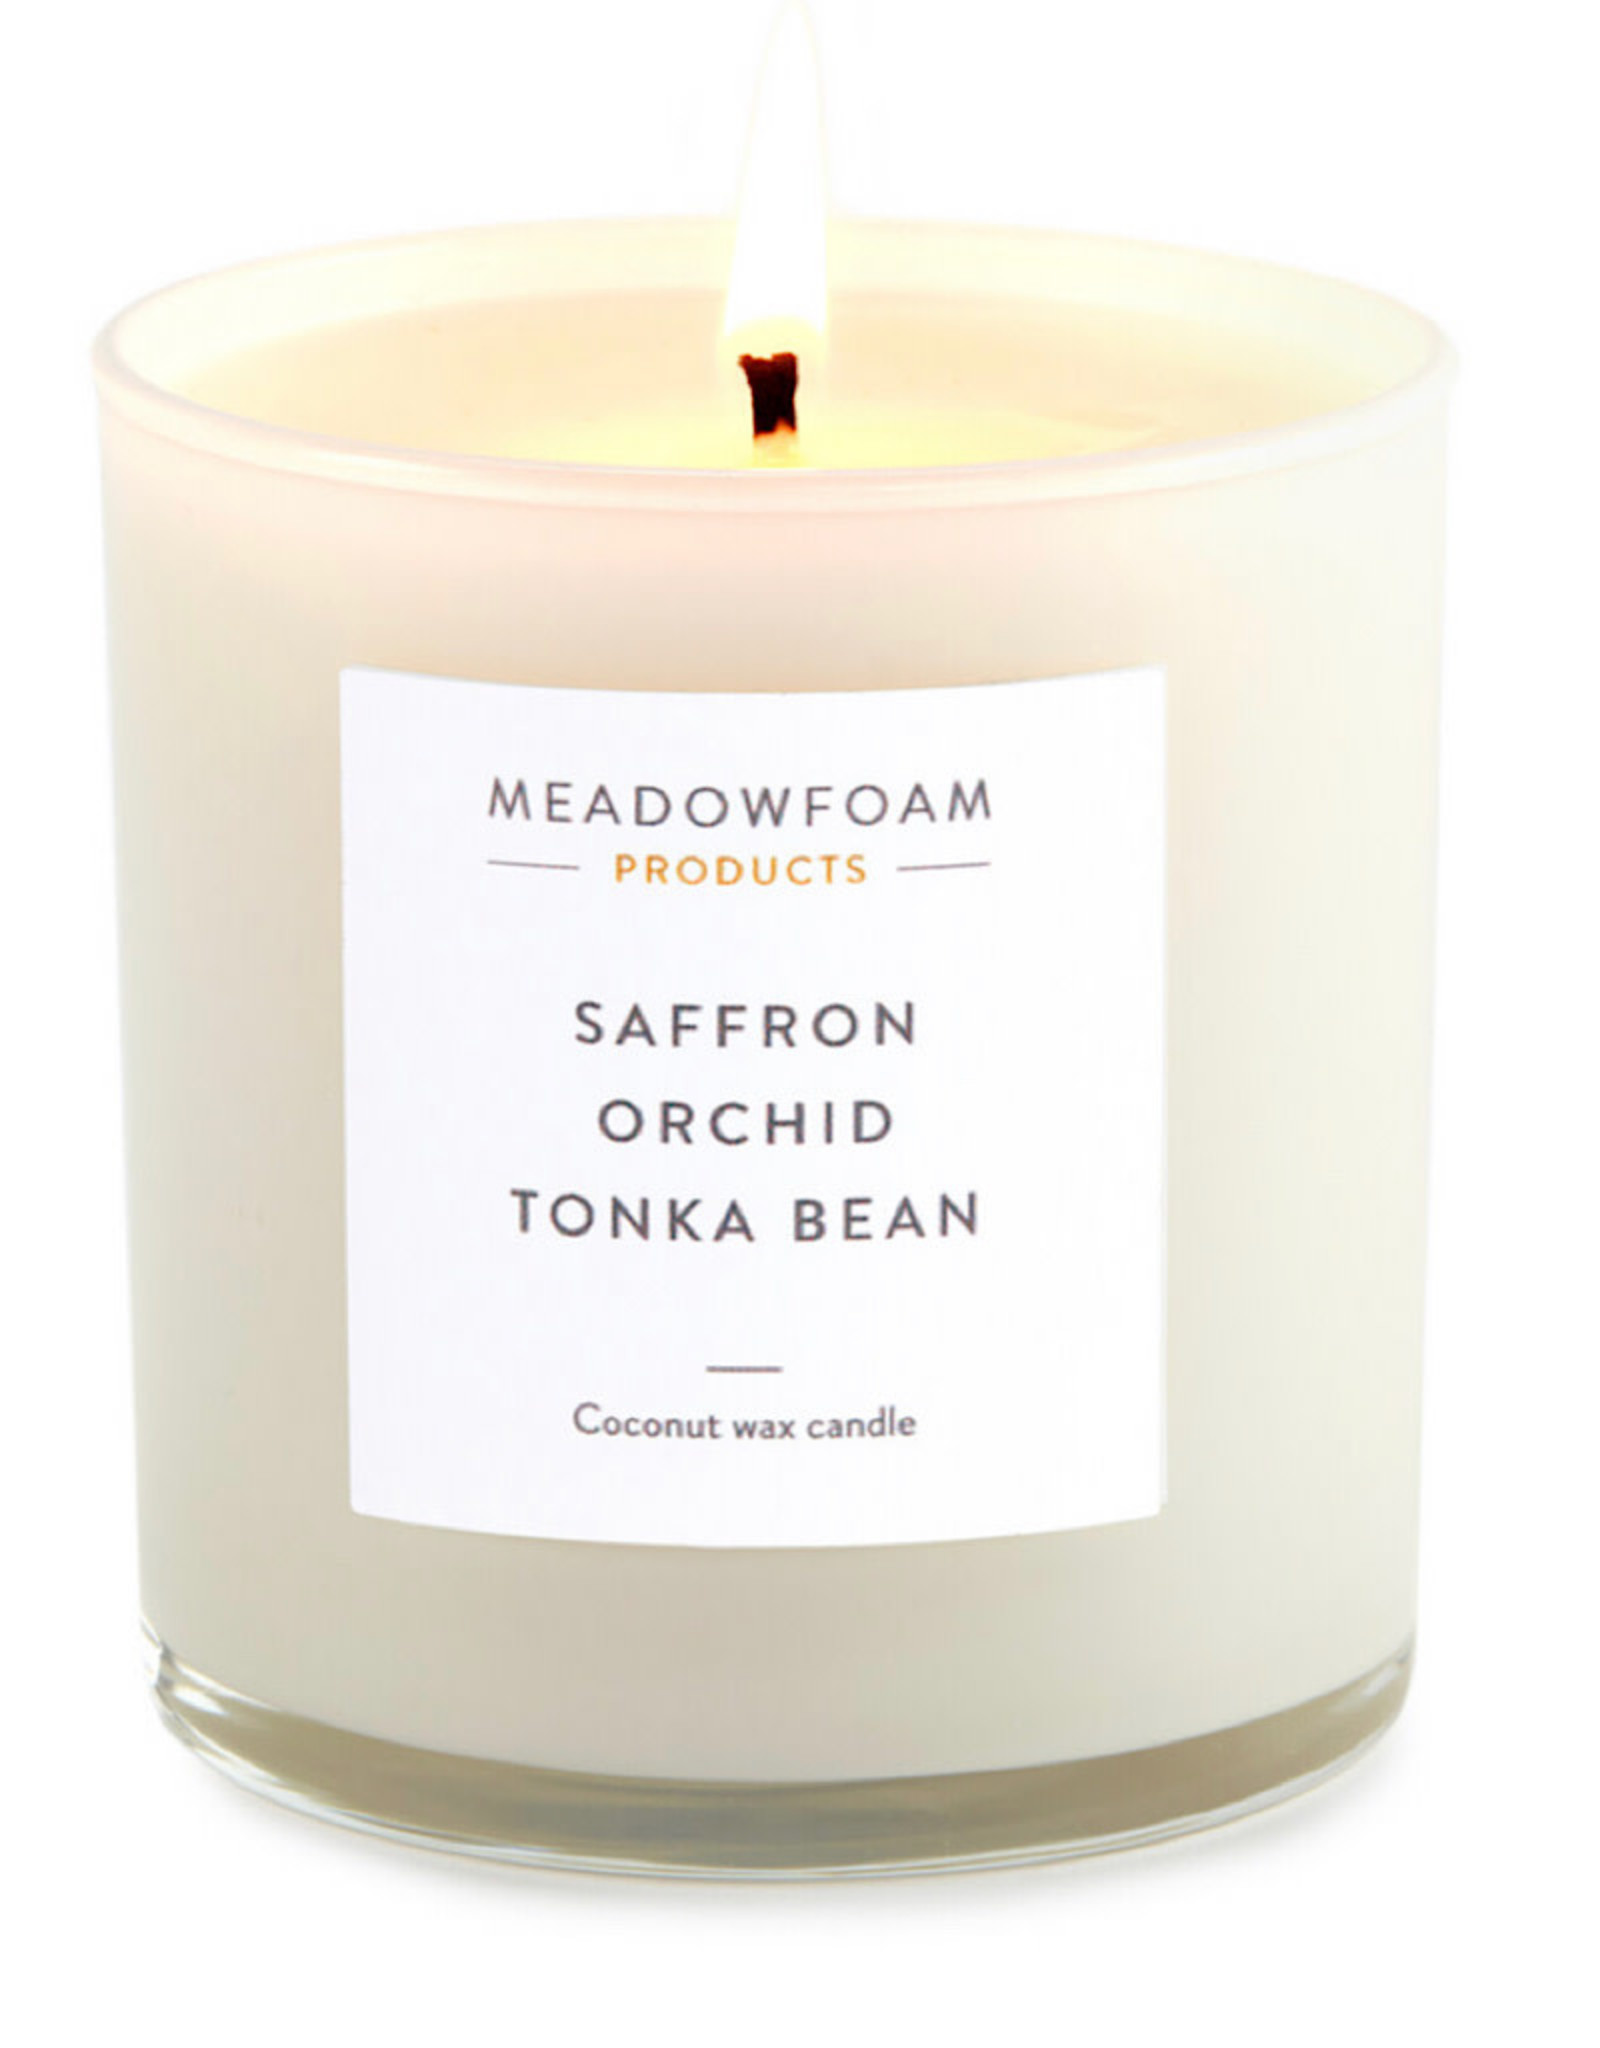 Meadowfoam 11oz Candle COTTON Wick in Cocktail Glass